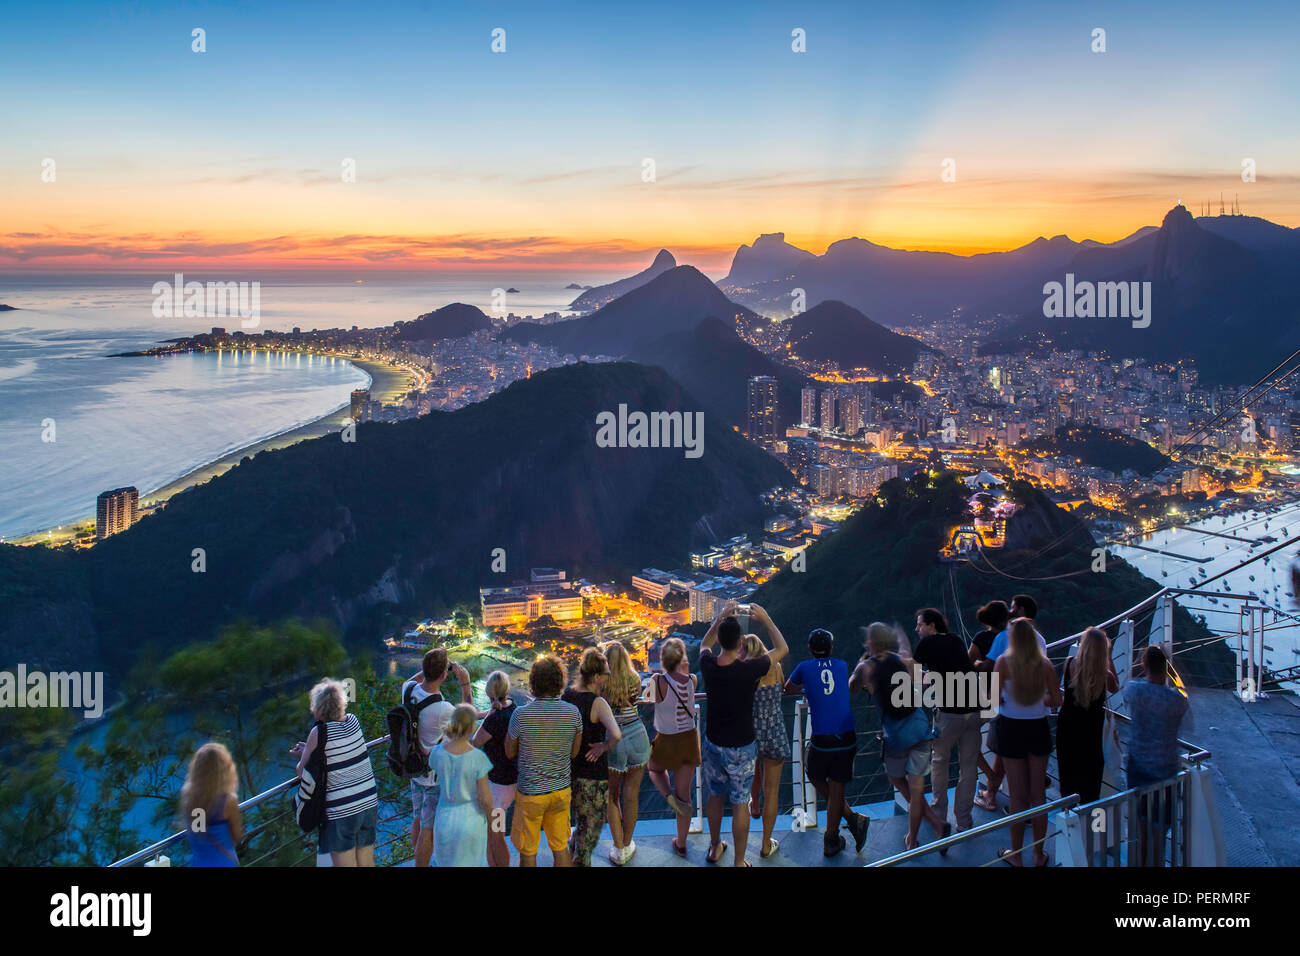 Tourists viewing Christ the Redeemer on Mount Corcovado and the city at sunset from Sugarloaf (Pao de Acucar) in Rio de Janeiro, Brazil Stock Photo